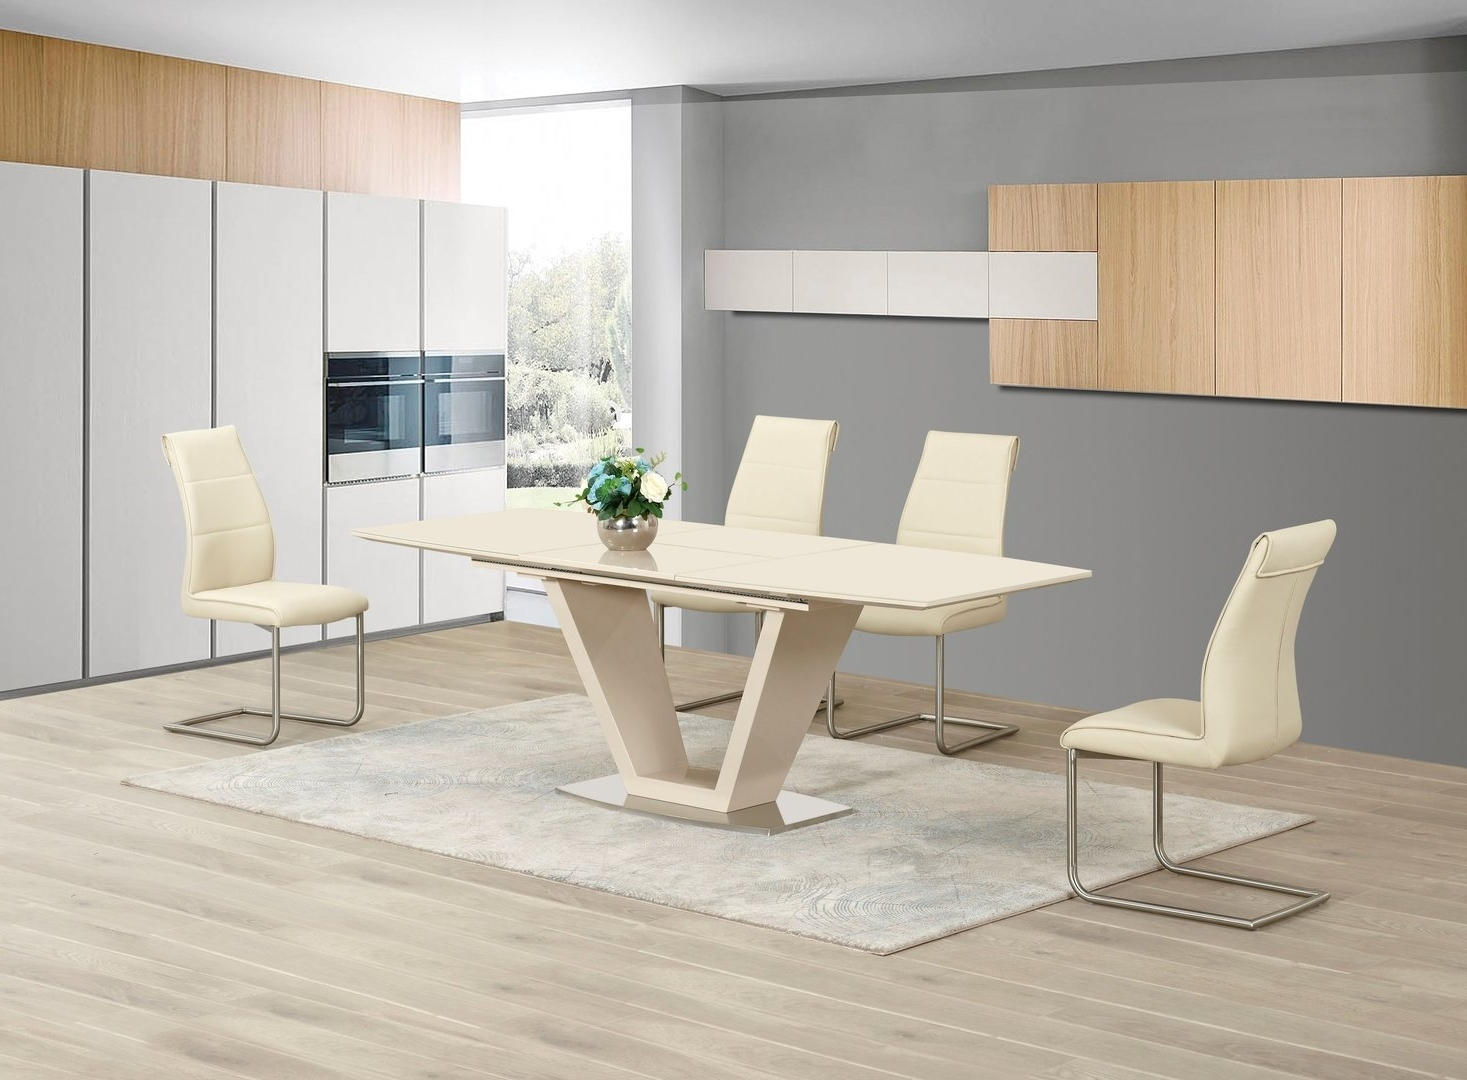 Most Recently Released Extending Dining Tables And 8 Chairs Pertaining To Extending Cream Glass High Gloss Dining Table And 8 Cream Chairs (View 4 of 25)